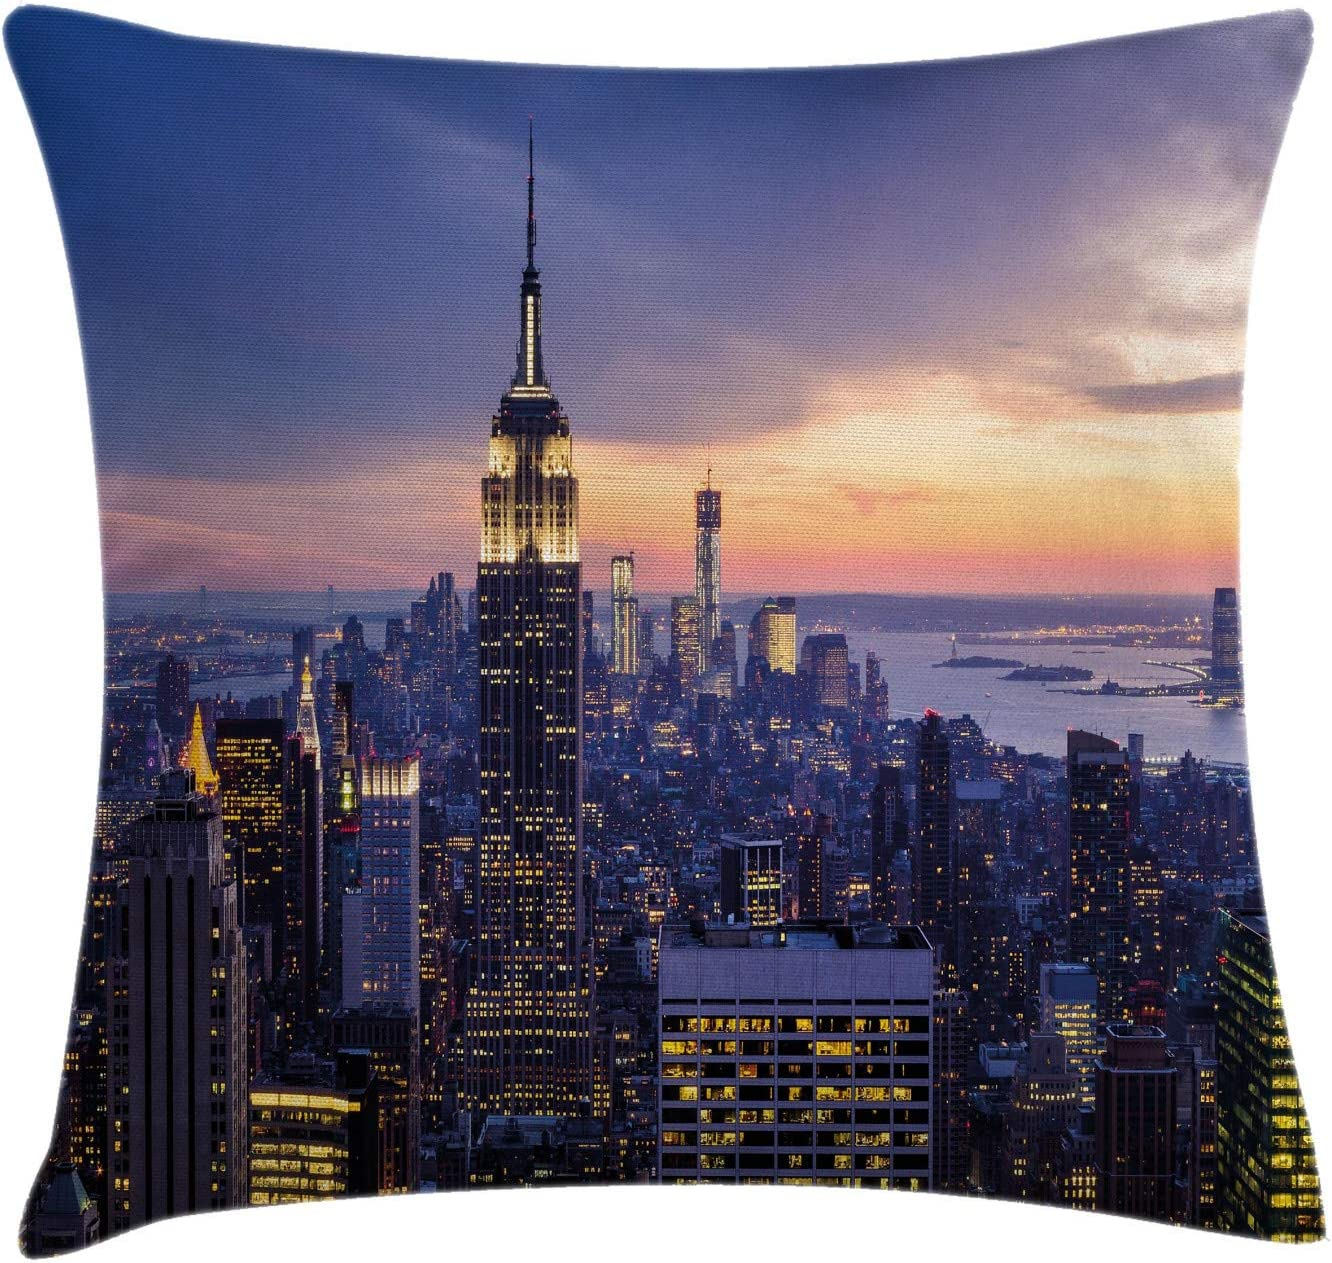 Ambesonne Modern Throw Pillow Cushion Cover, New York City Skyline with Skyscrapers at Sunset Night American Urban Life Image, Decorative Square Accent Pillow Case, 20